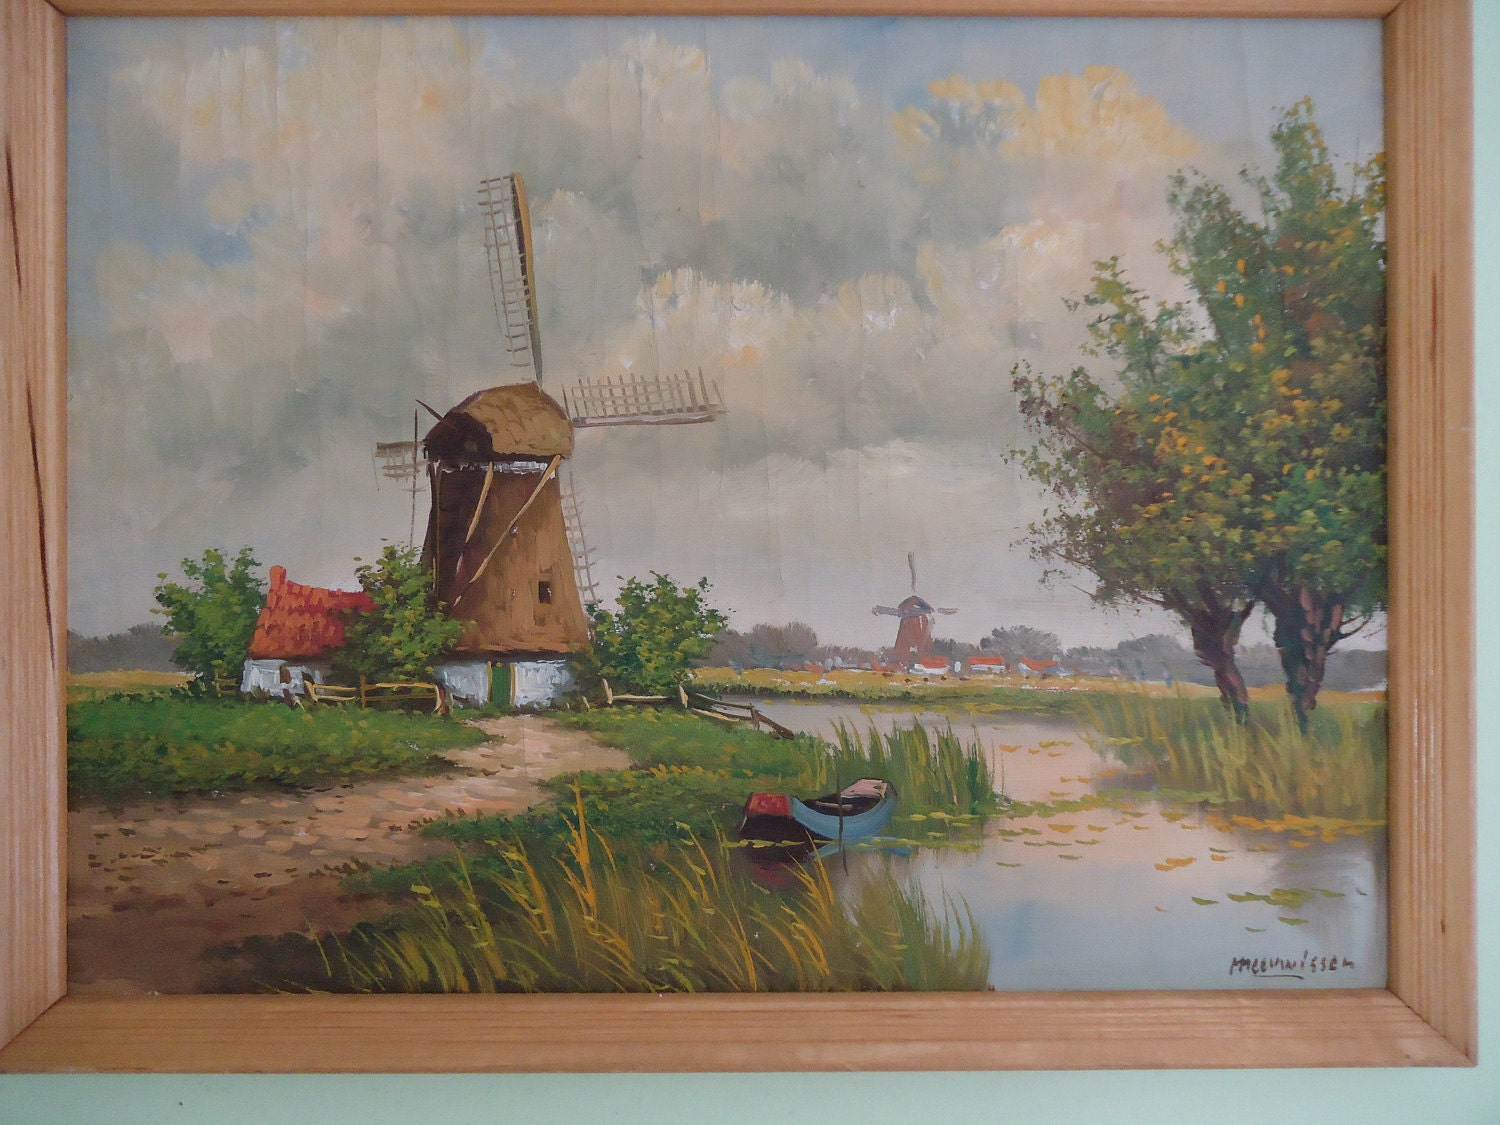 Vintage oil painting of a Dutch windmill